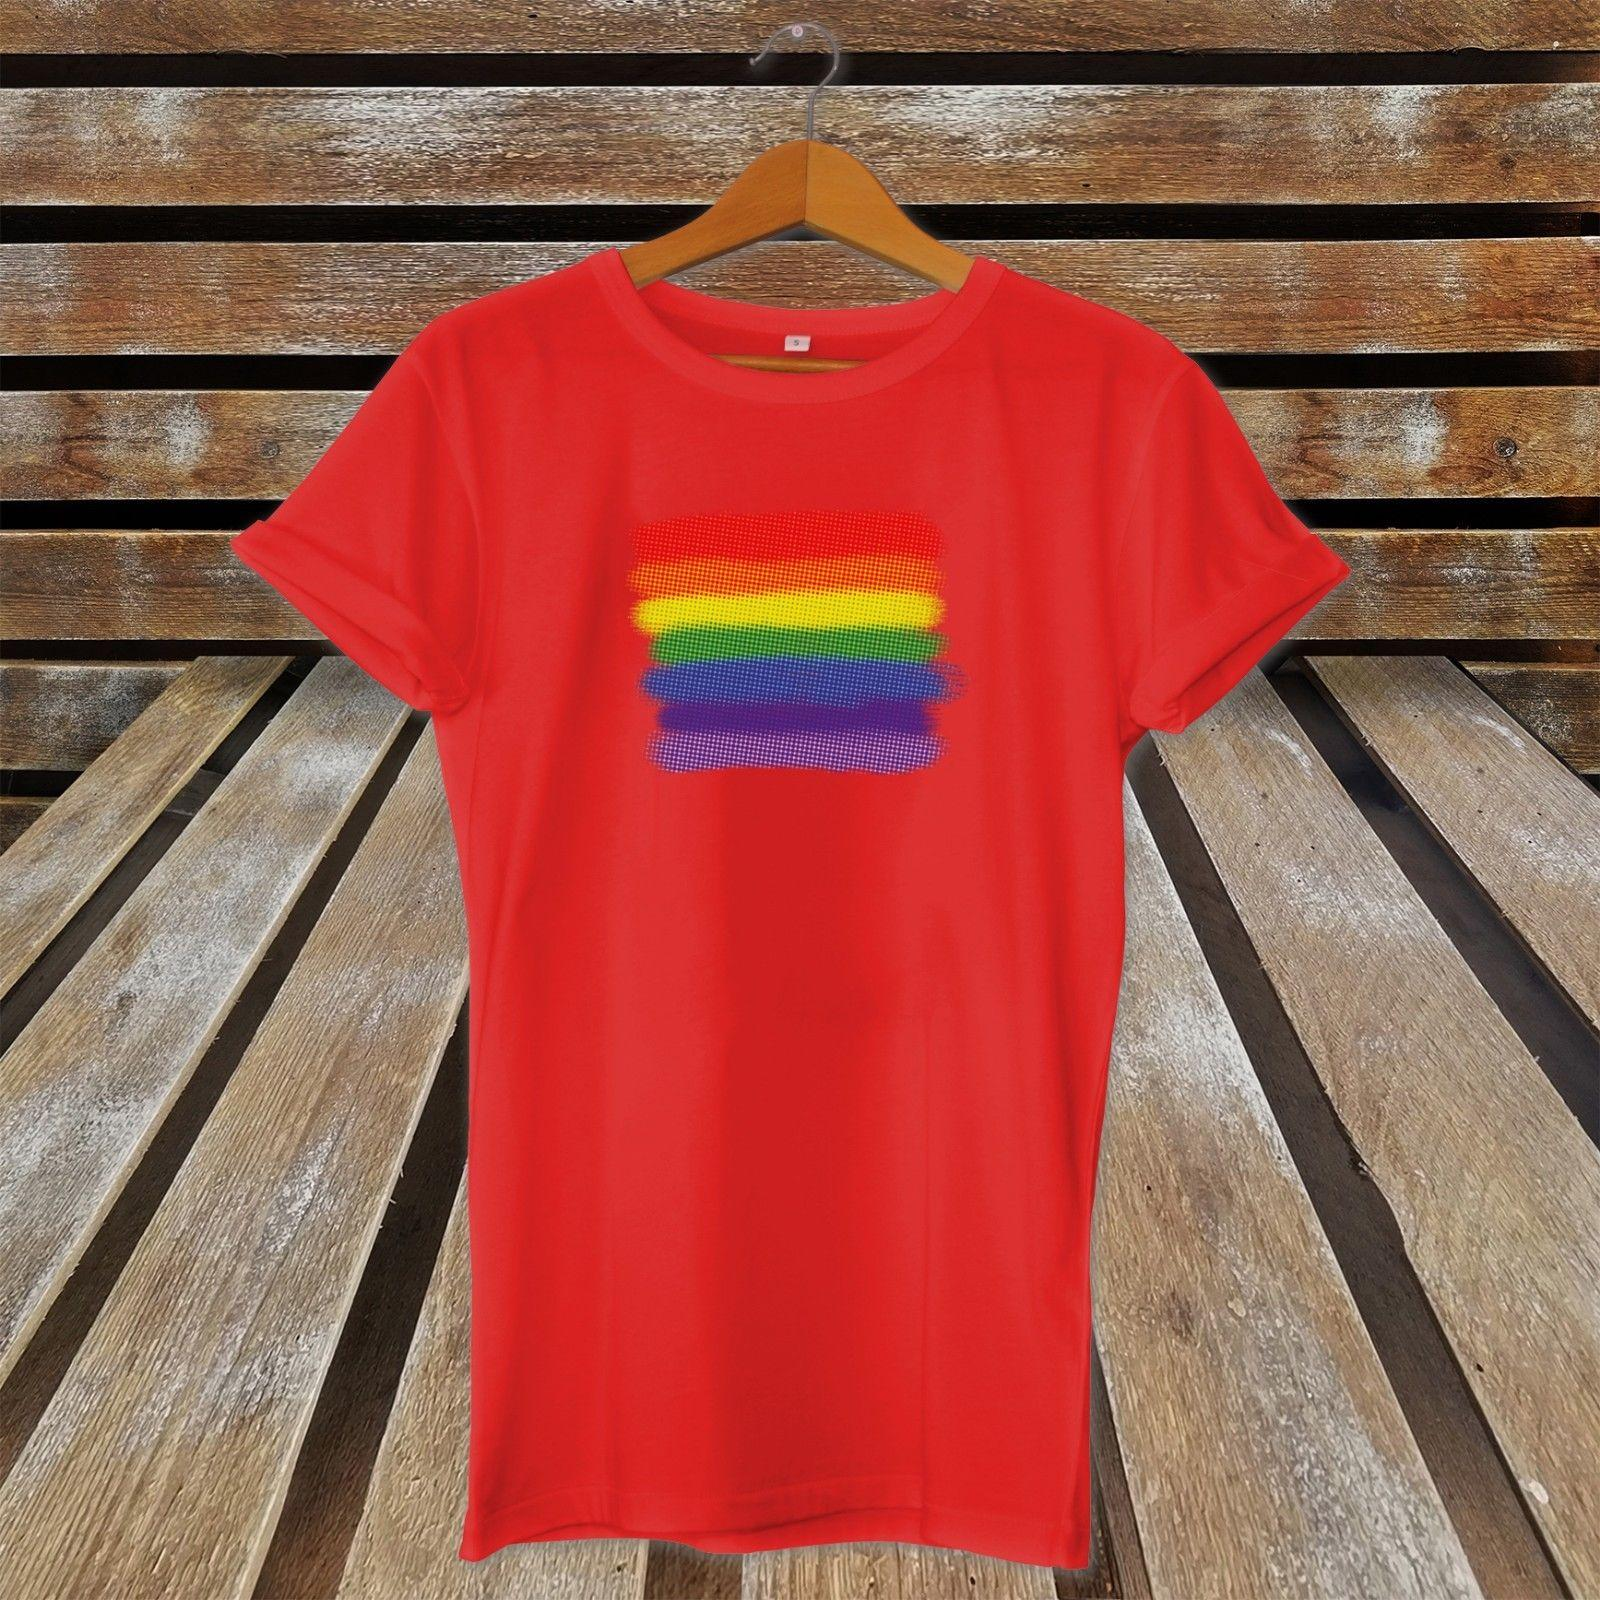 80bd8cee Details Zu Rainbow Halftone Ink Gay Pride T Shirt LGBT Celebration Funny  Unisex Casual Tee Gift Funny Screen Tees Shirts With Design From  Micky_tees, ...